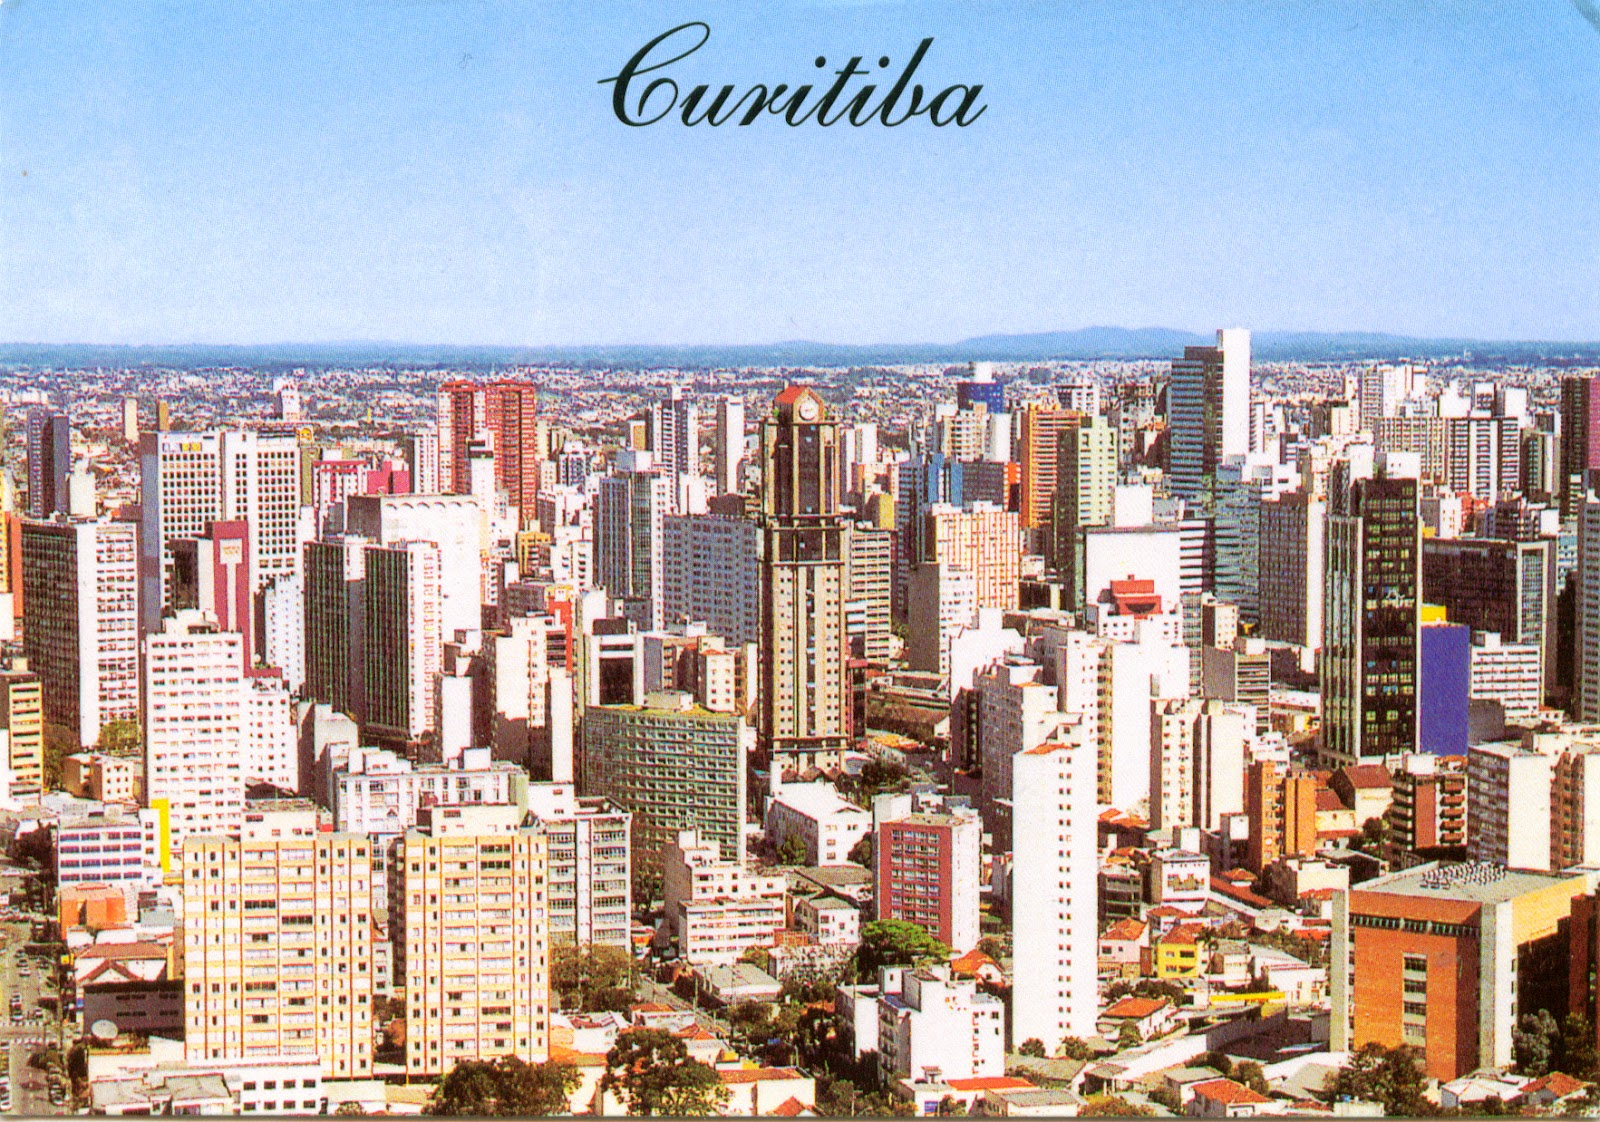 Curitiba Brazil  city photos : ... , COME TO MY HOME!: 0821 BRAZIL Paraná Curitiba, the Model City